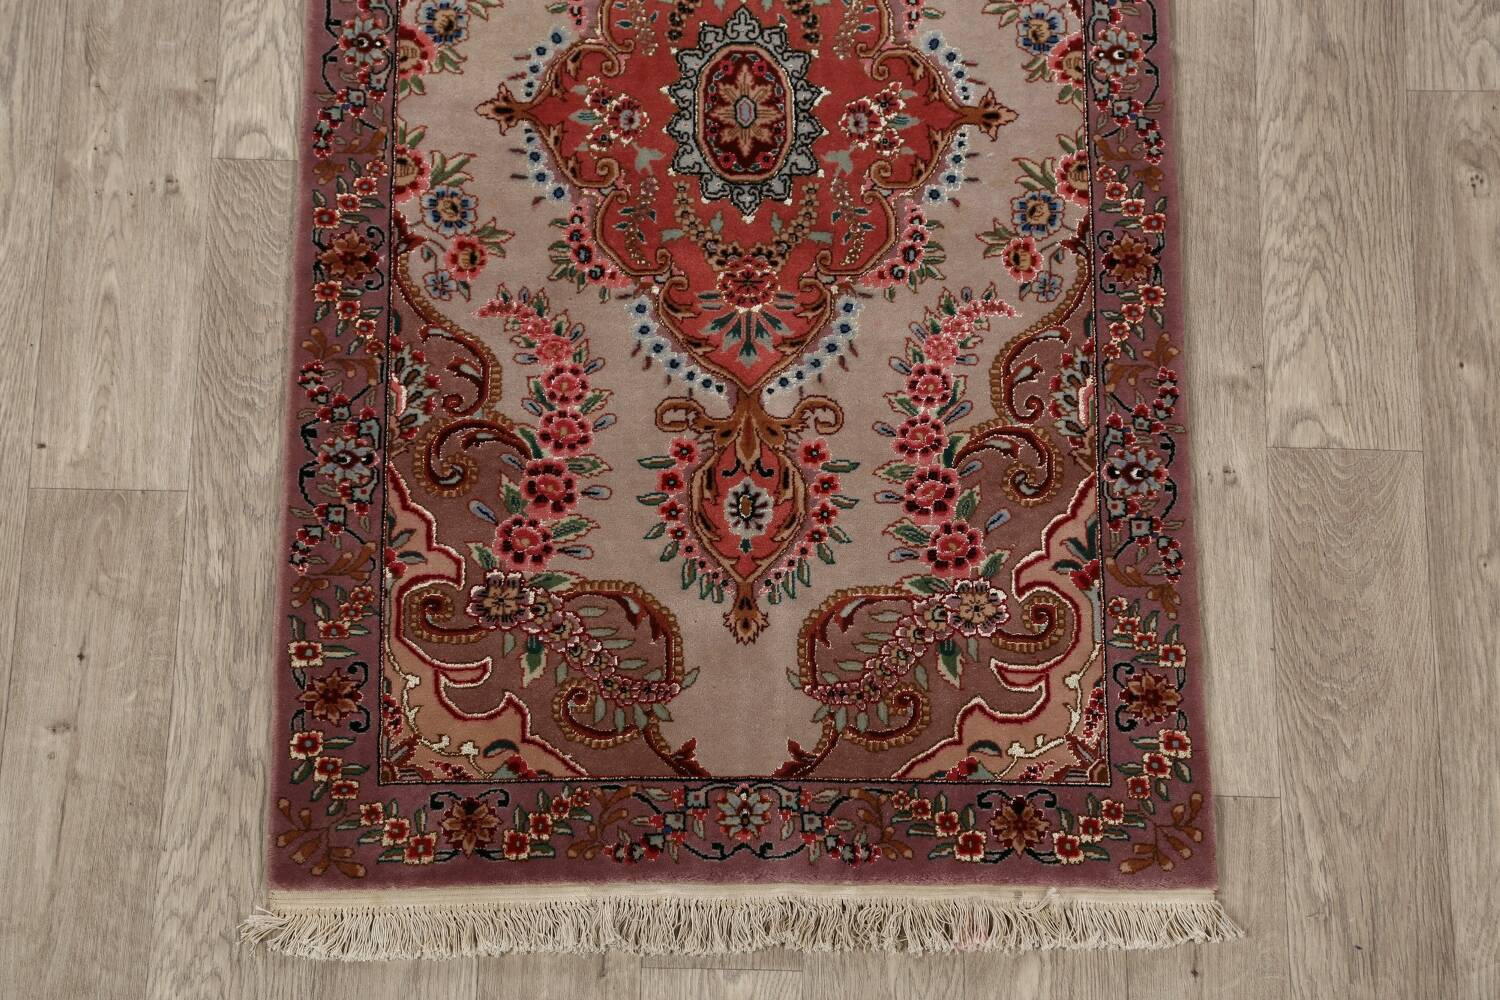 All-Over Floral Tabriz Persian Runner Rug 3x12 image 8